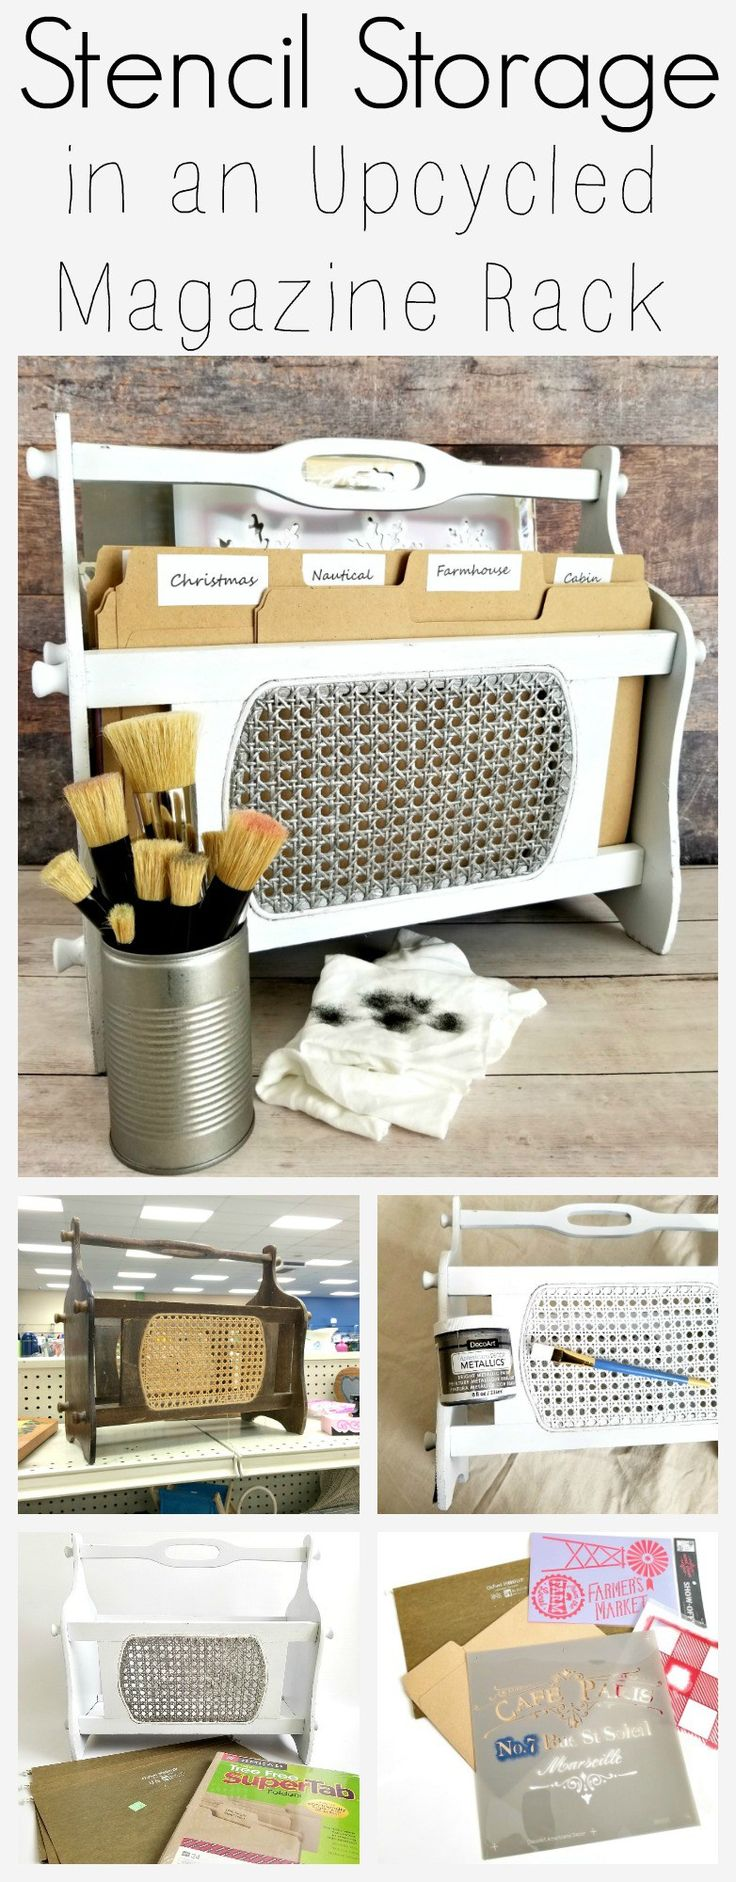 "An outdated magazine rack from the thrift store gets a modern industrial makeover and repurpose with this fun DIY tutorial! Love the idea of giving pressed cane a ""metal"" look...and upcycling the magazine rack as a portable file as stencil storage is genius! Of course, you could use it for filing paper or other ephemera, too. Great thrift store repurpose craft project from Sadie Seasongoods / www.sadieseasongoods.com"